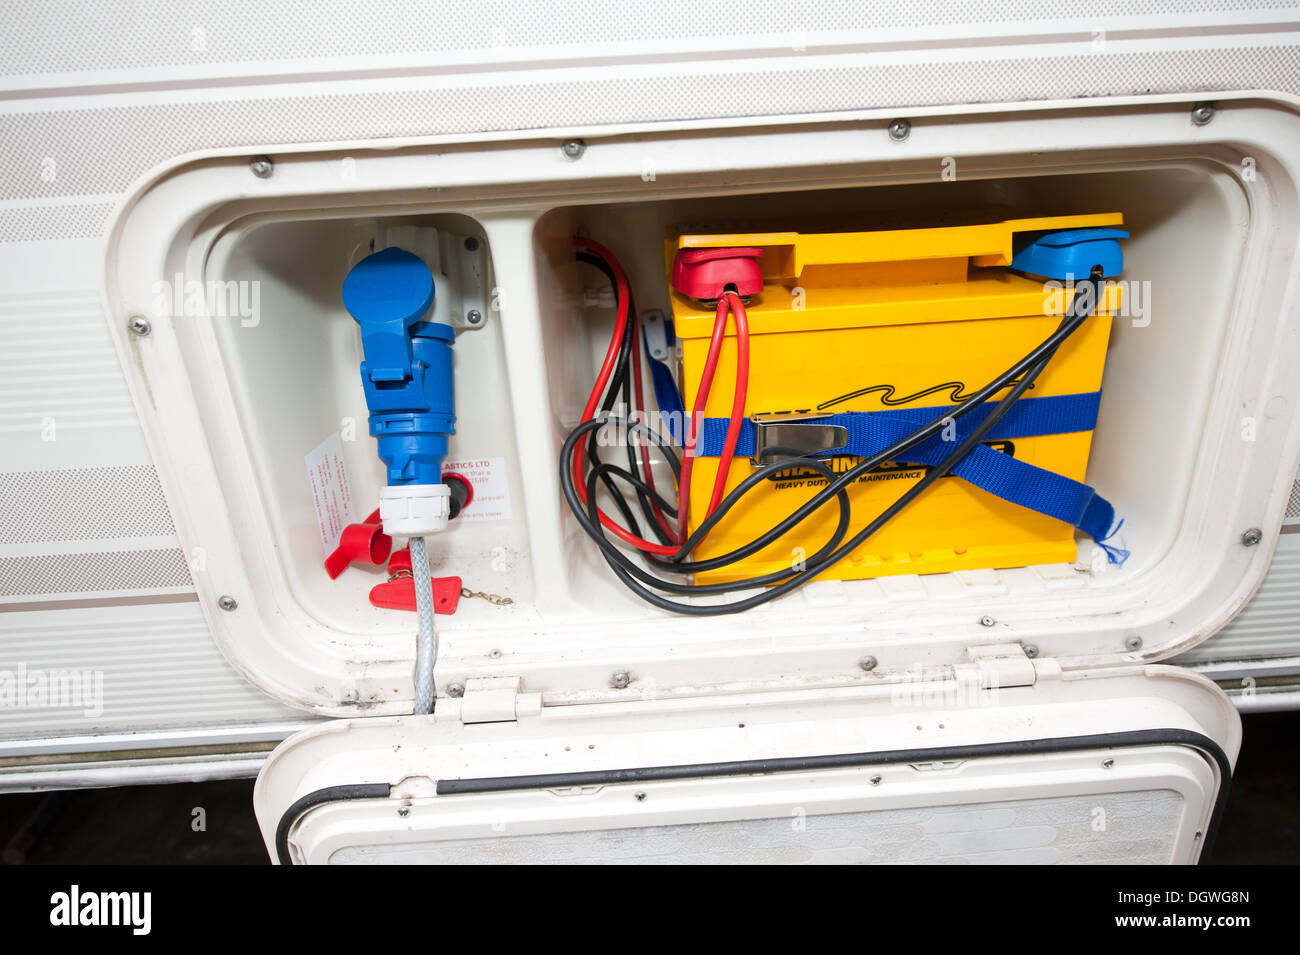 Caravan hook up electrical